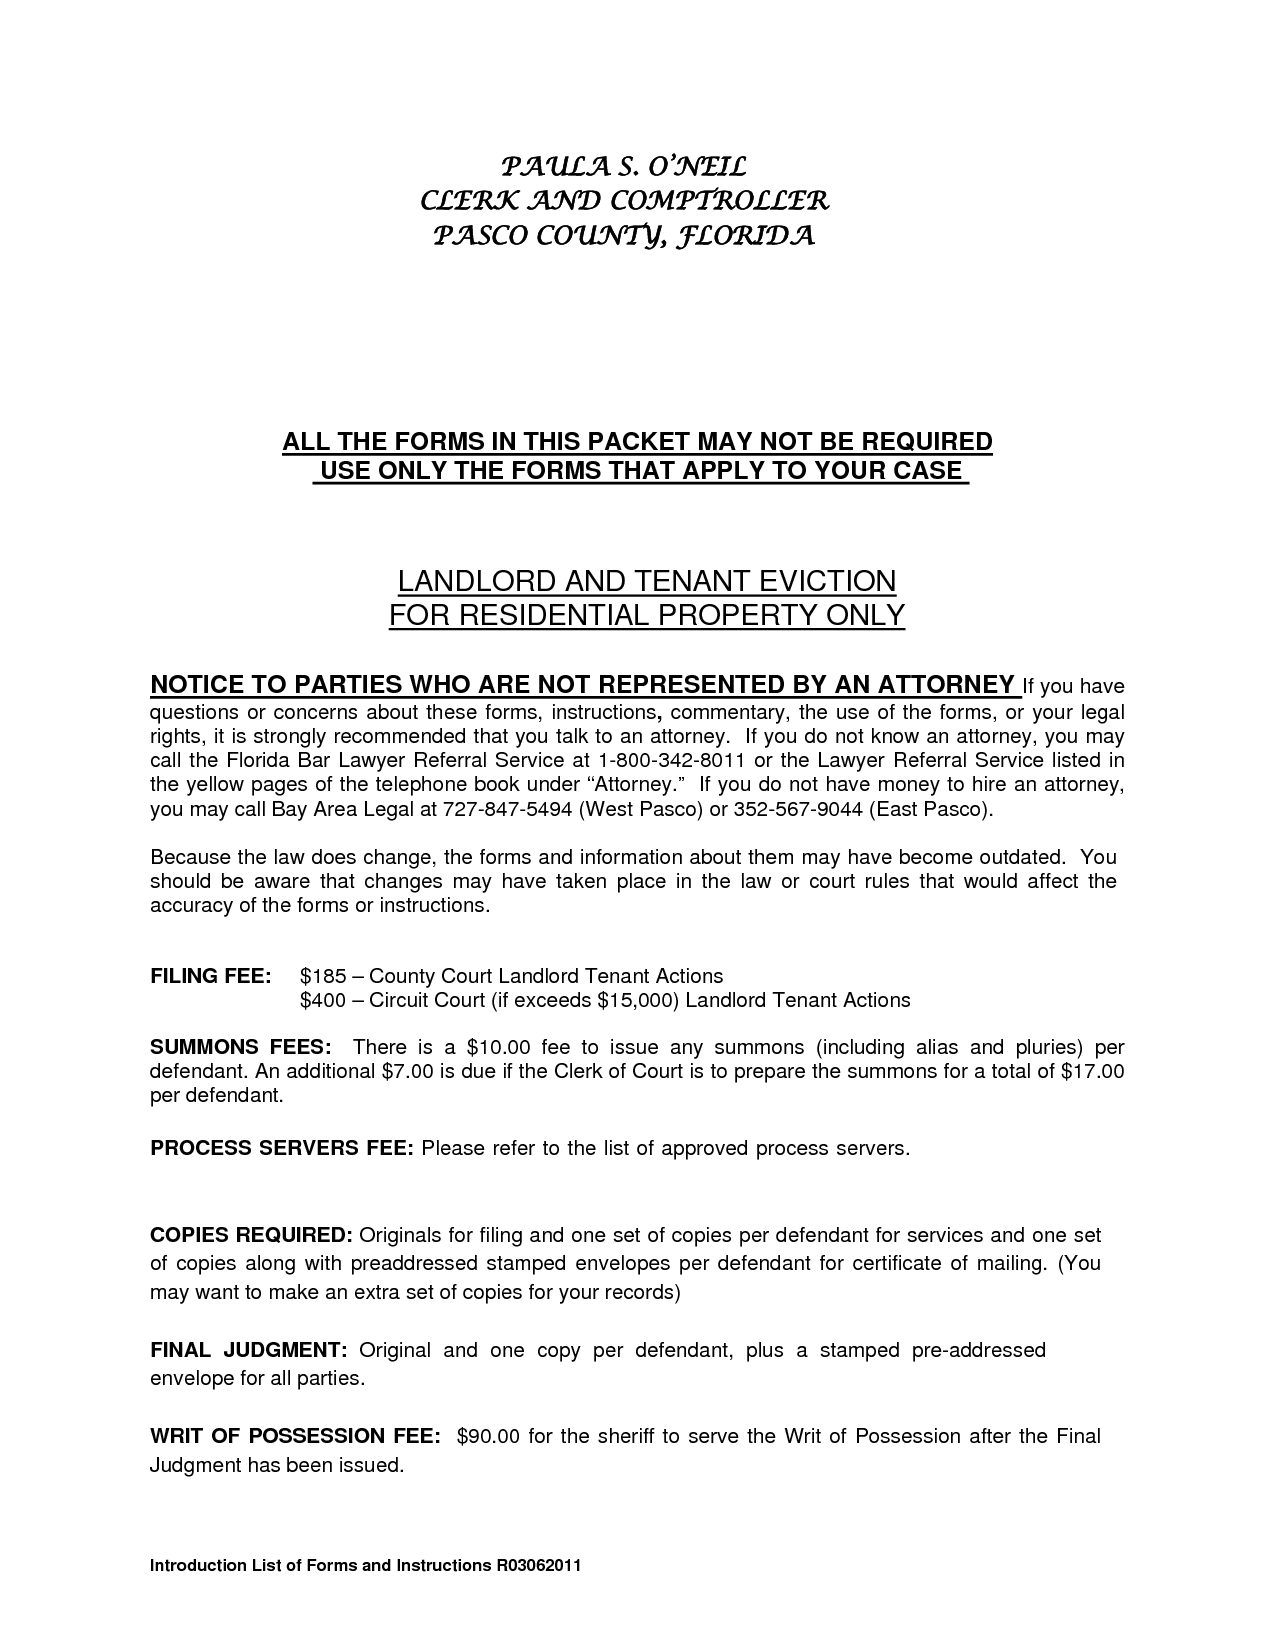 Tenant Warning Letter Template - Residential Landlord Tenant Eviction Notice form by Ere